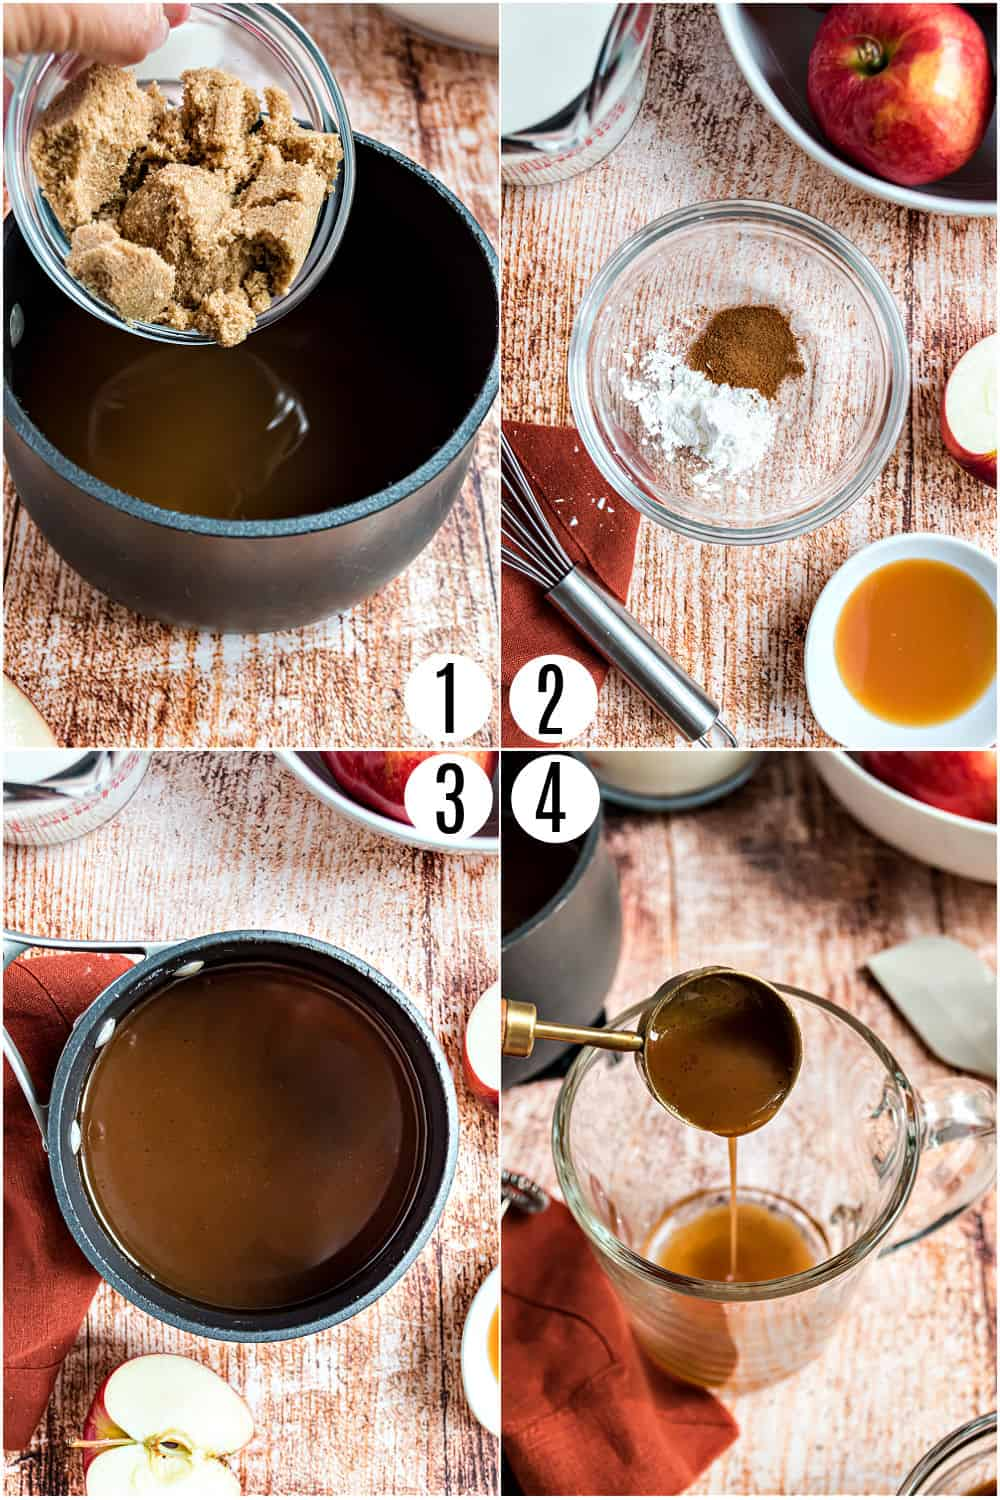 Step by step photos showing how to make apple cider syrup.